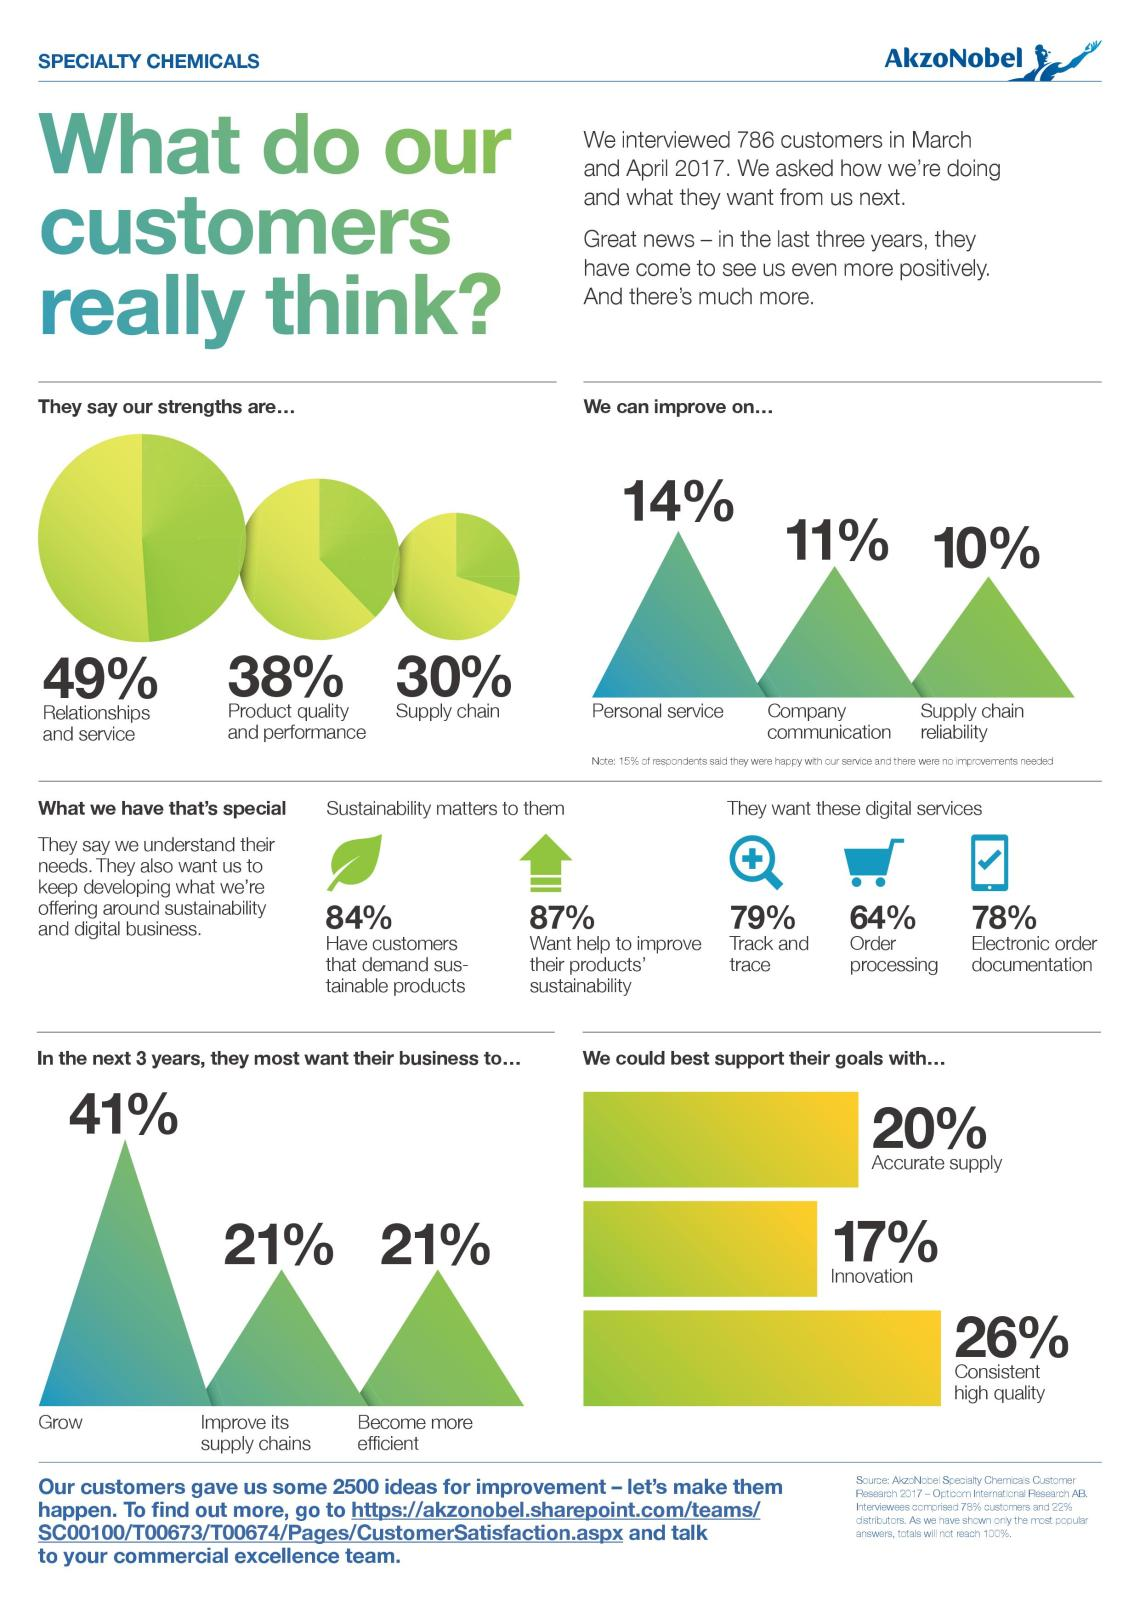 AkzoNobel customer insight infographic copywriting example - portrait orientation